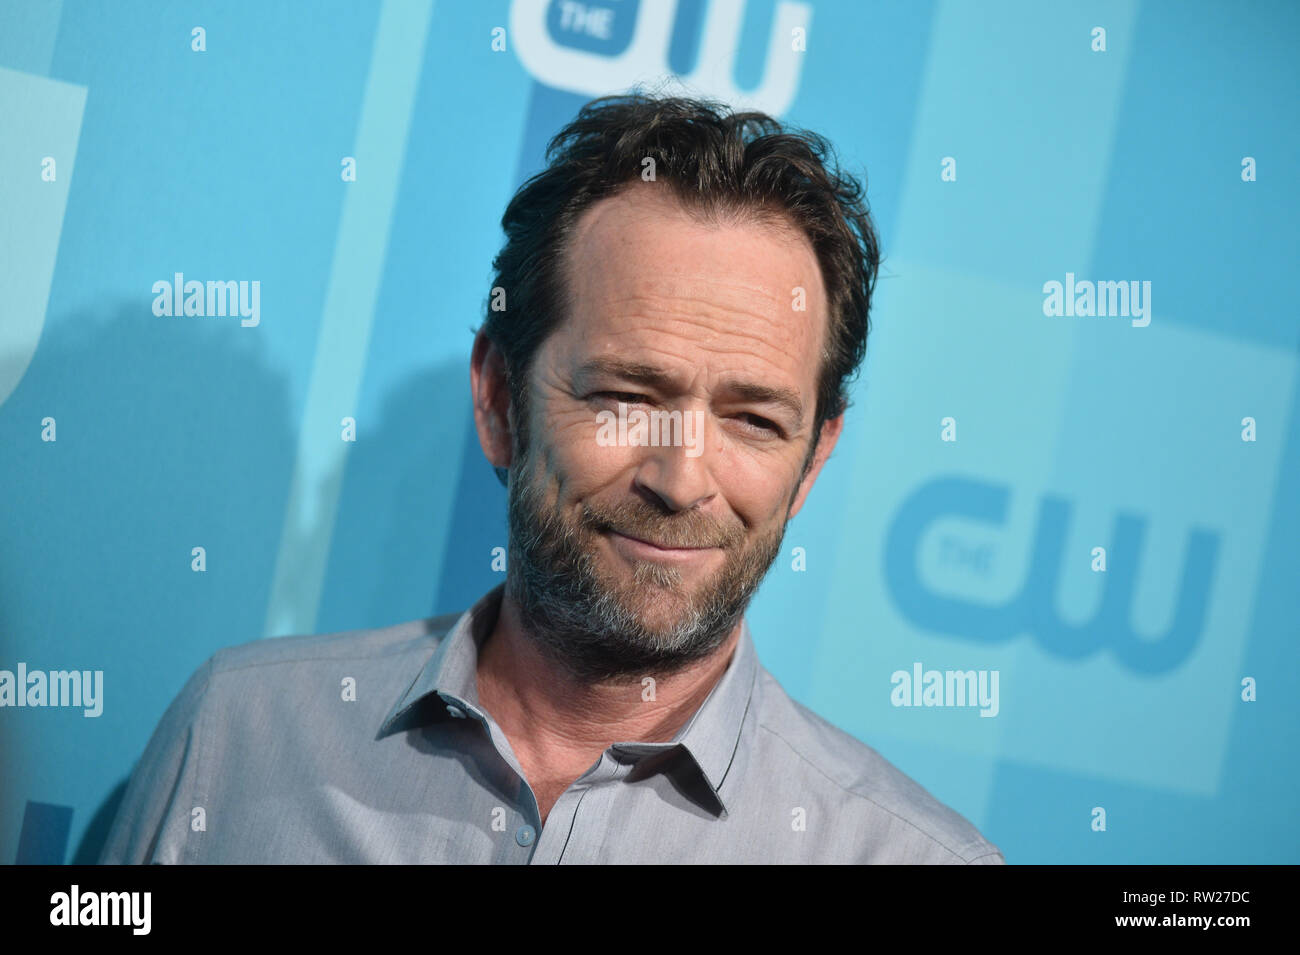 FILE PICTURE: Burbank, California, USA. 4th Mar 2019. Actor Luke Perry dies after suffering a massive stroke. Picture taken: Actor Luke Perry attends the 2017 CW Upfront on May 18, 2017 in New York City. Credit: Erik Pendzich/Alamy Live News Stock Photo